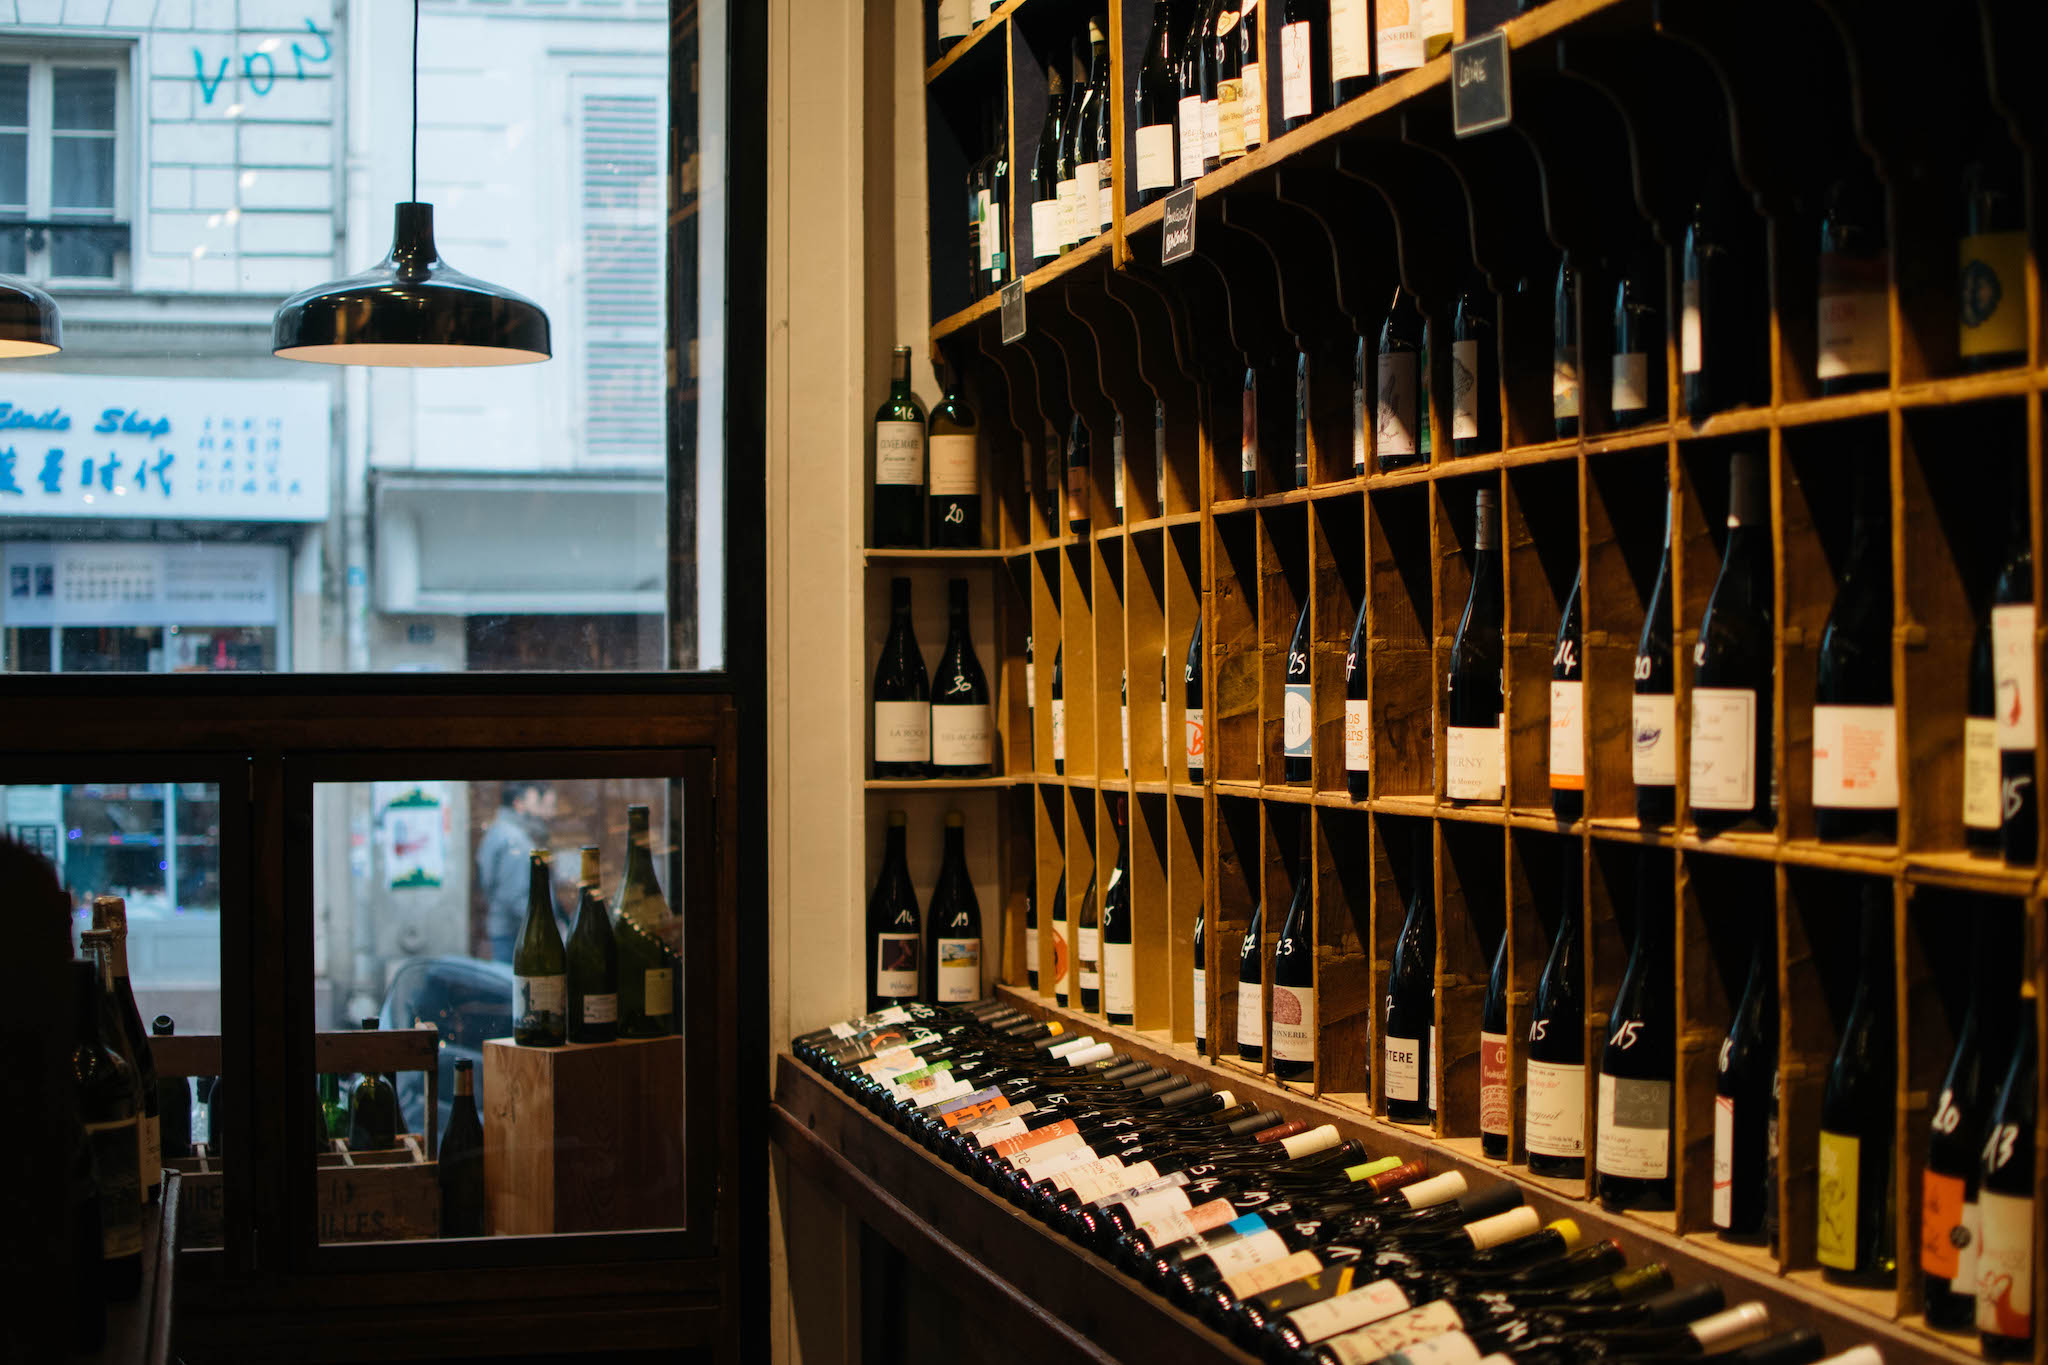 A wide selection of natural wines is shelved at La Cave de Bellville, a natural wine bar in Paris.